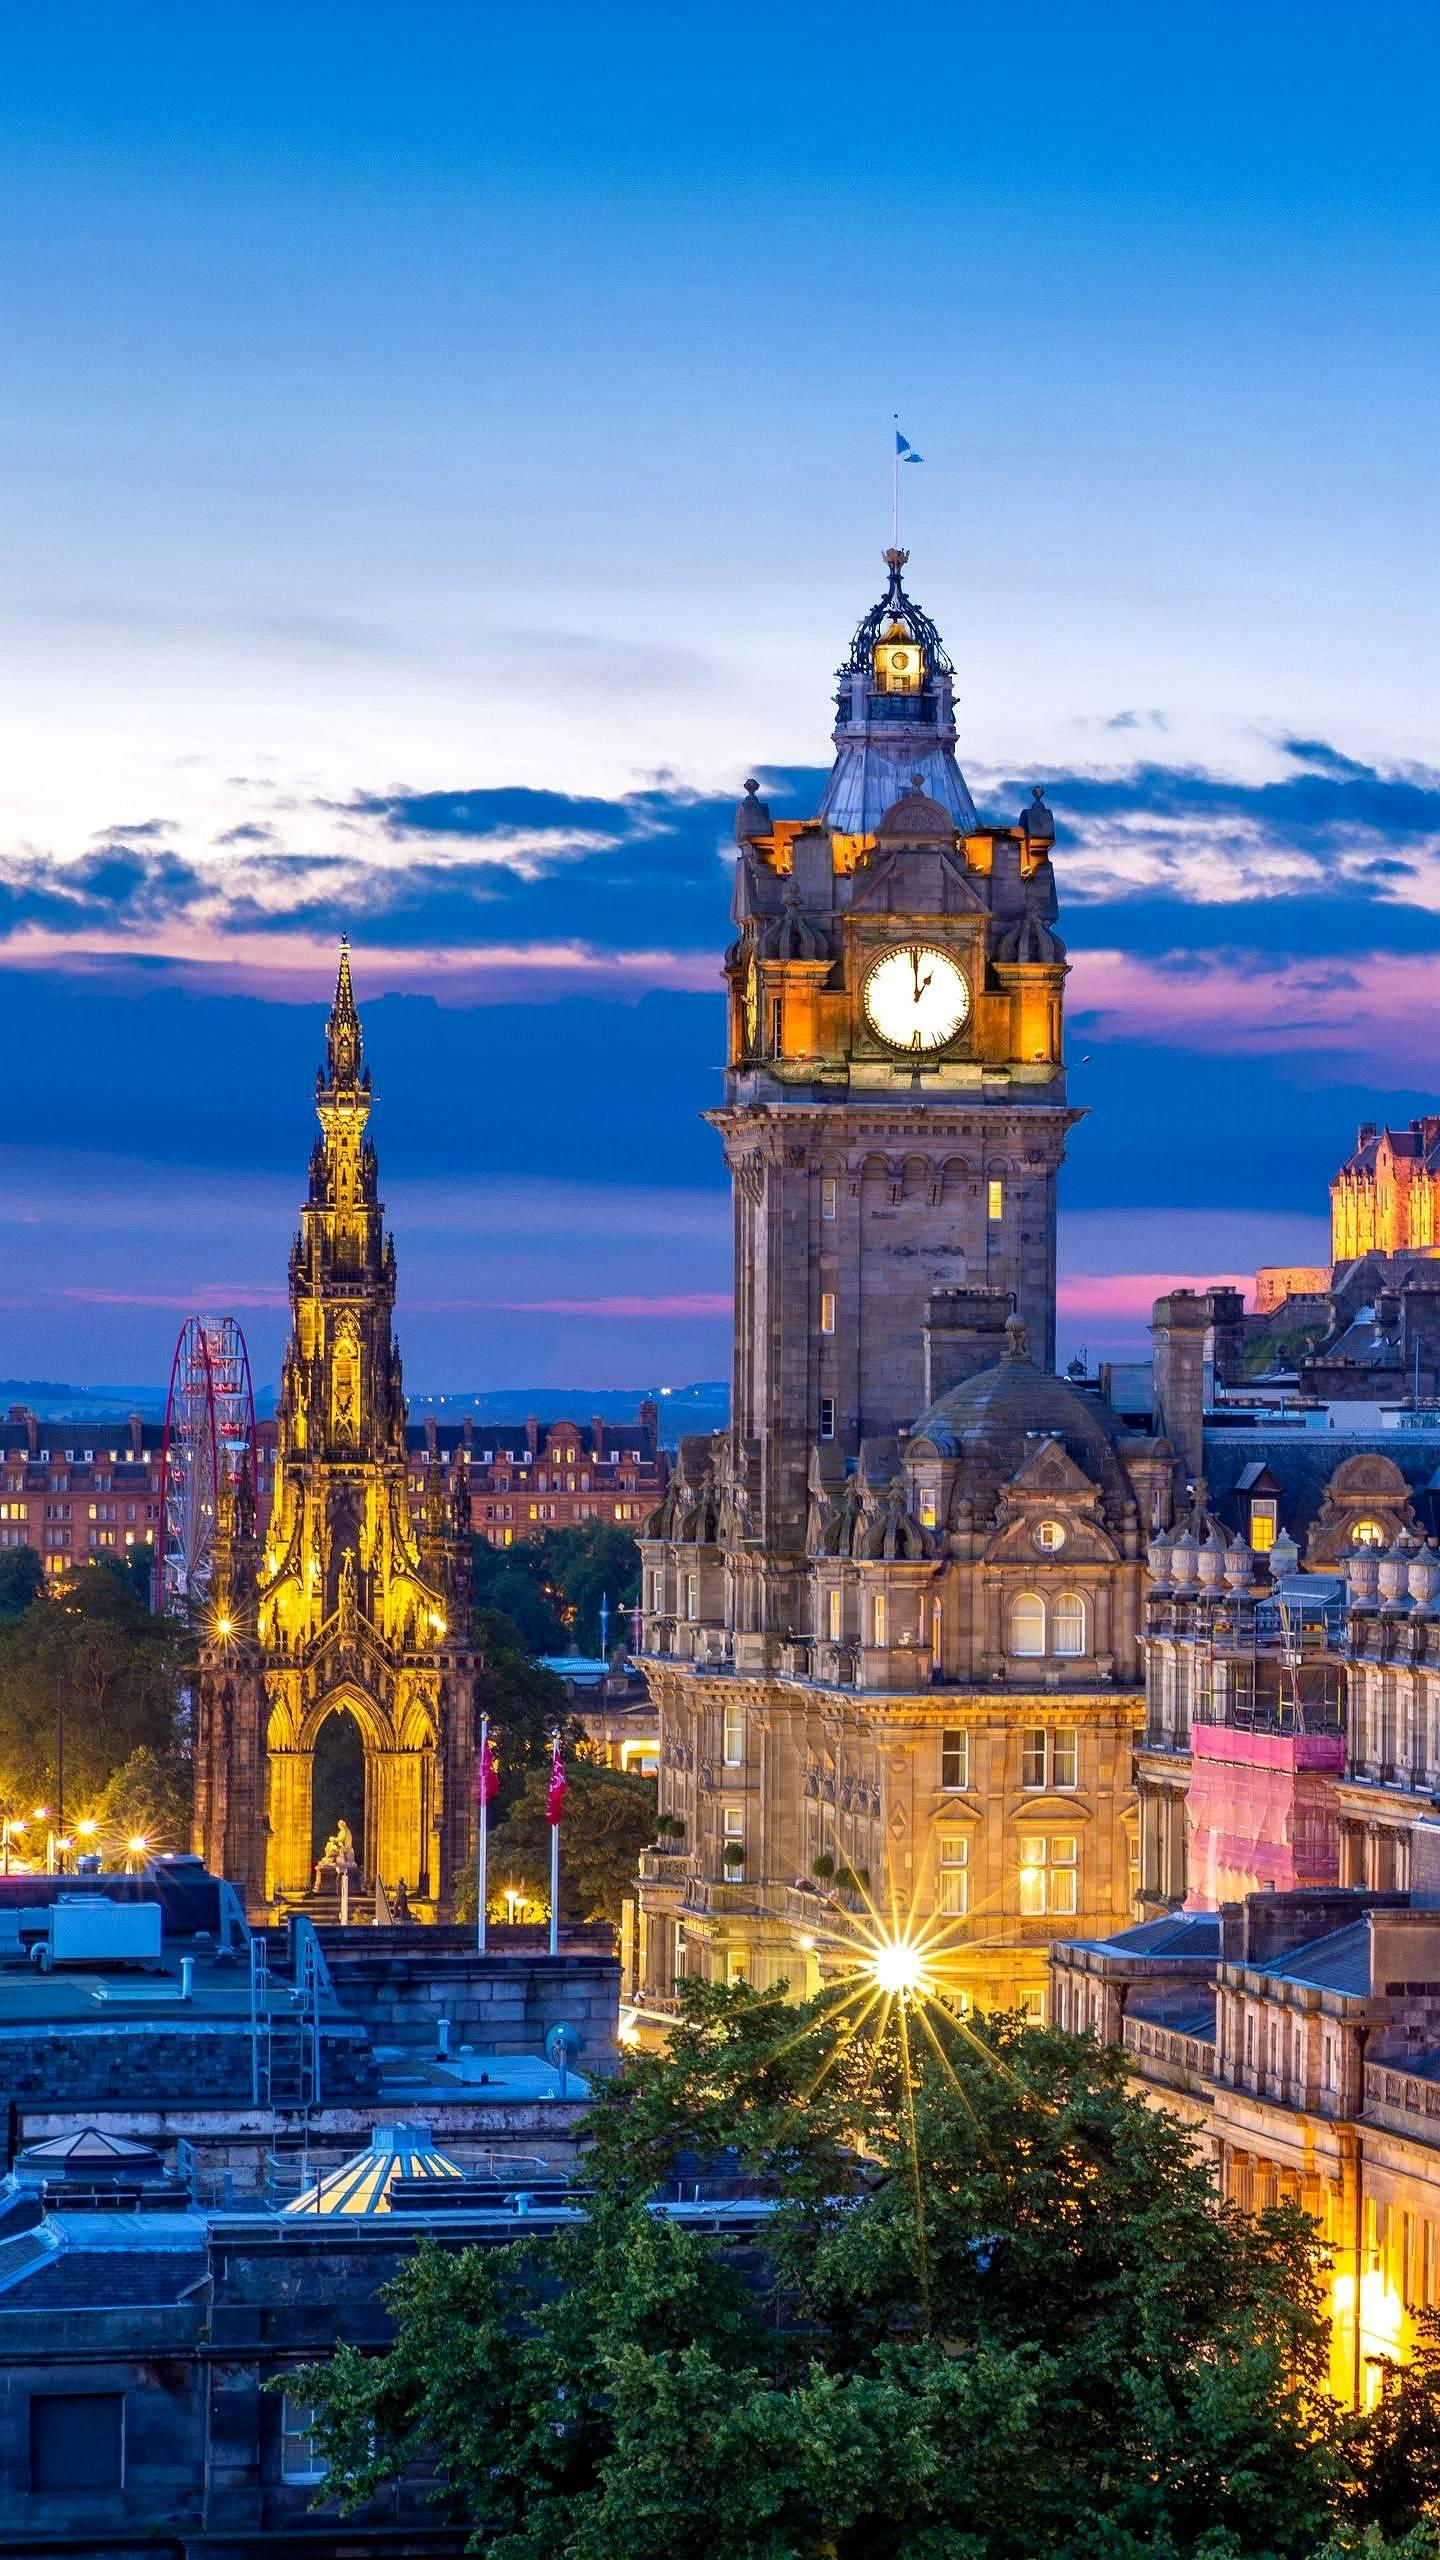 The heart of Scotland: Edinburgh. Thousands of years of history have left an ancient charm for the city. It is worthwhile to measure with the footsteps and feel with the heart.